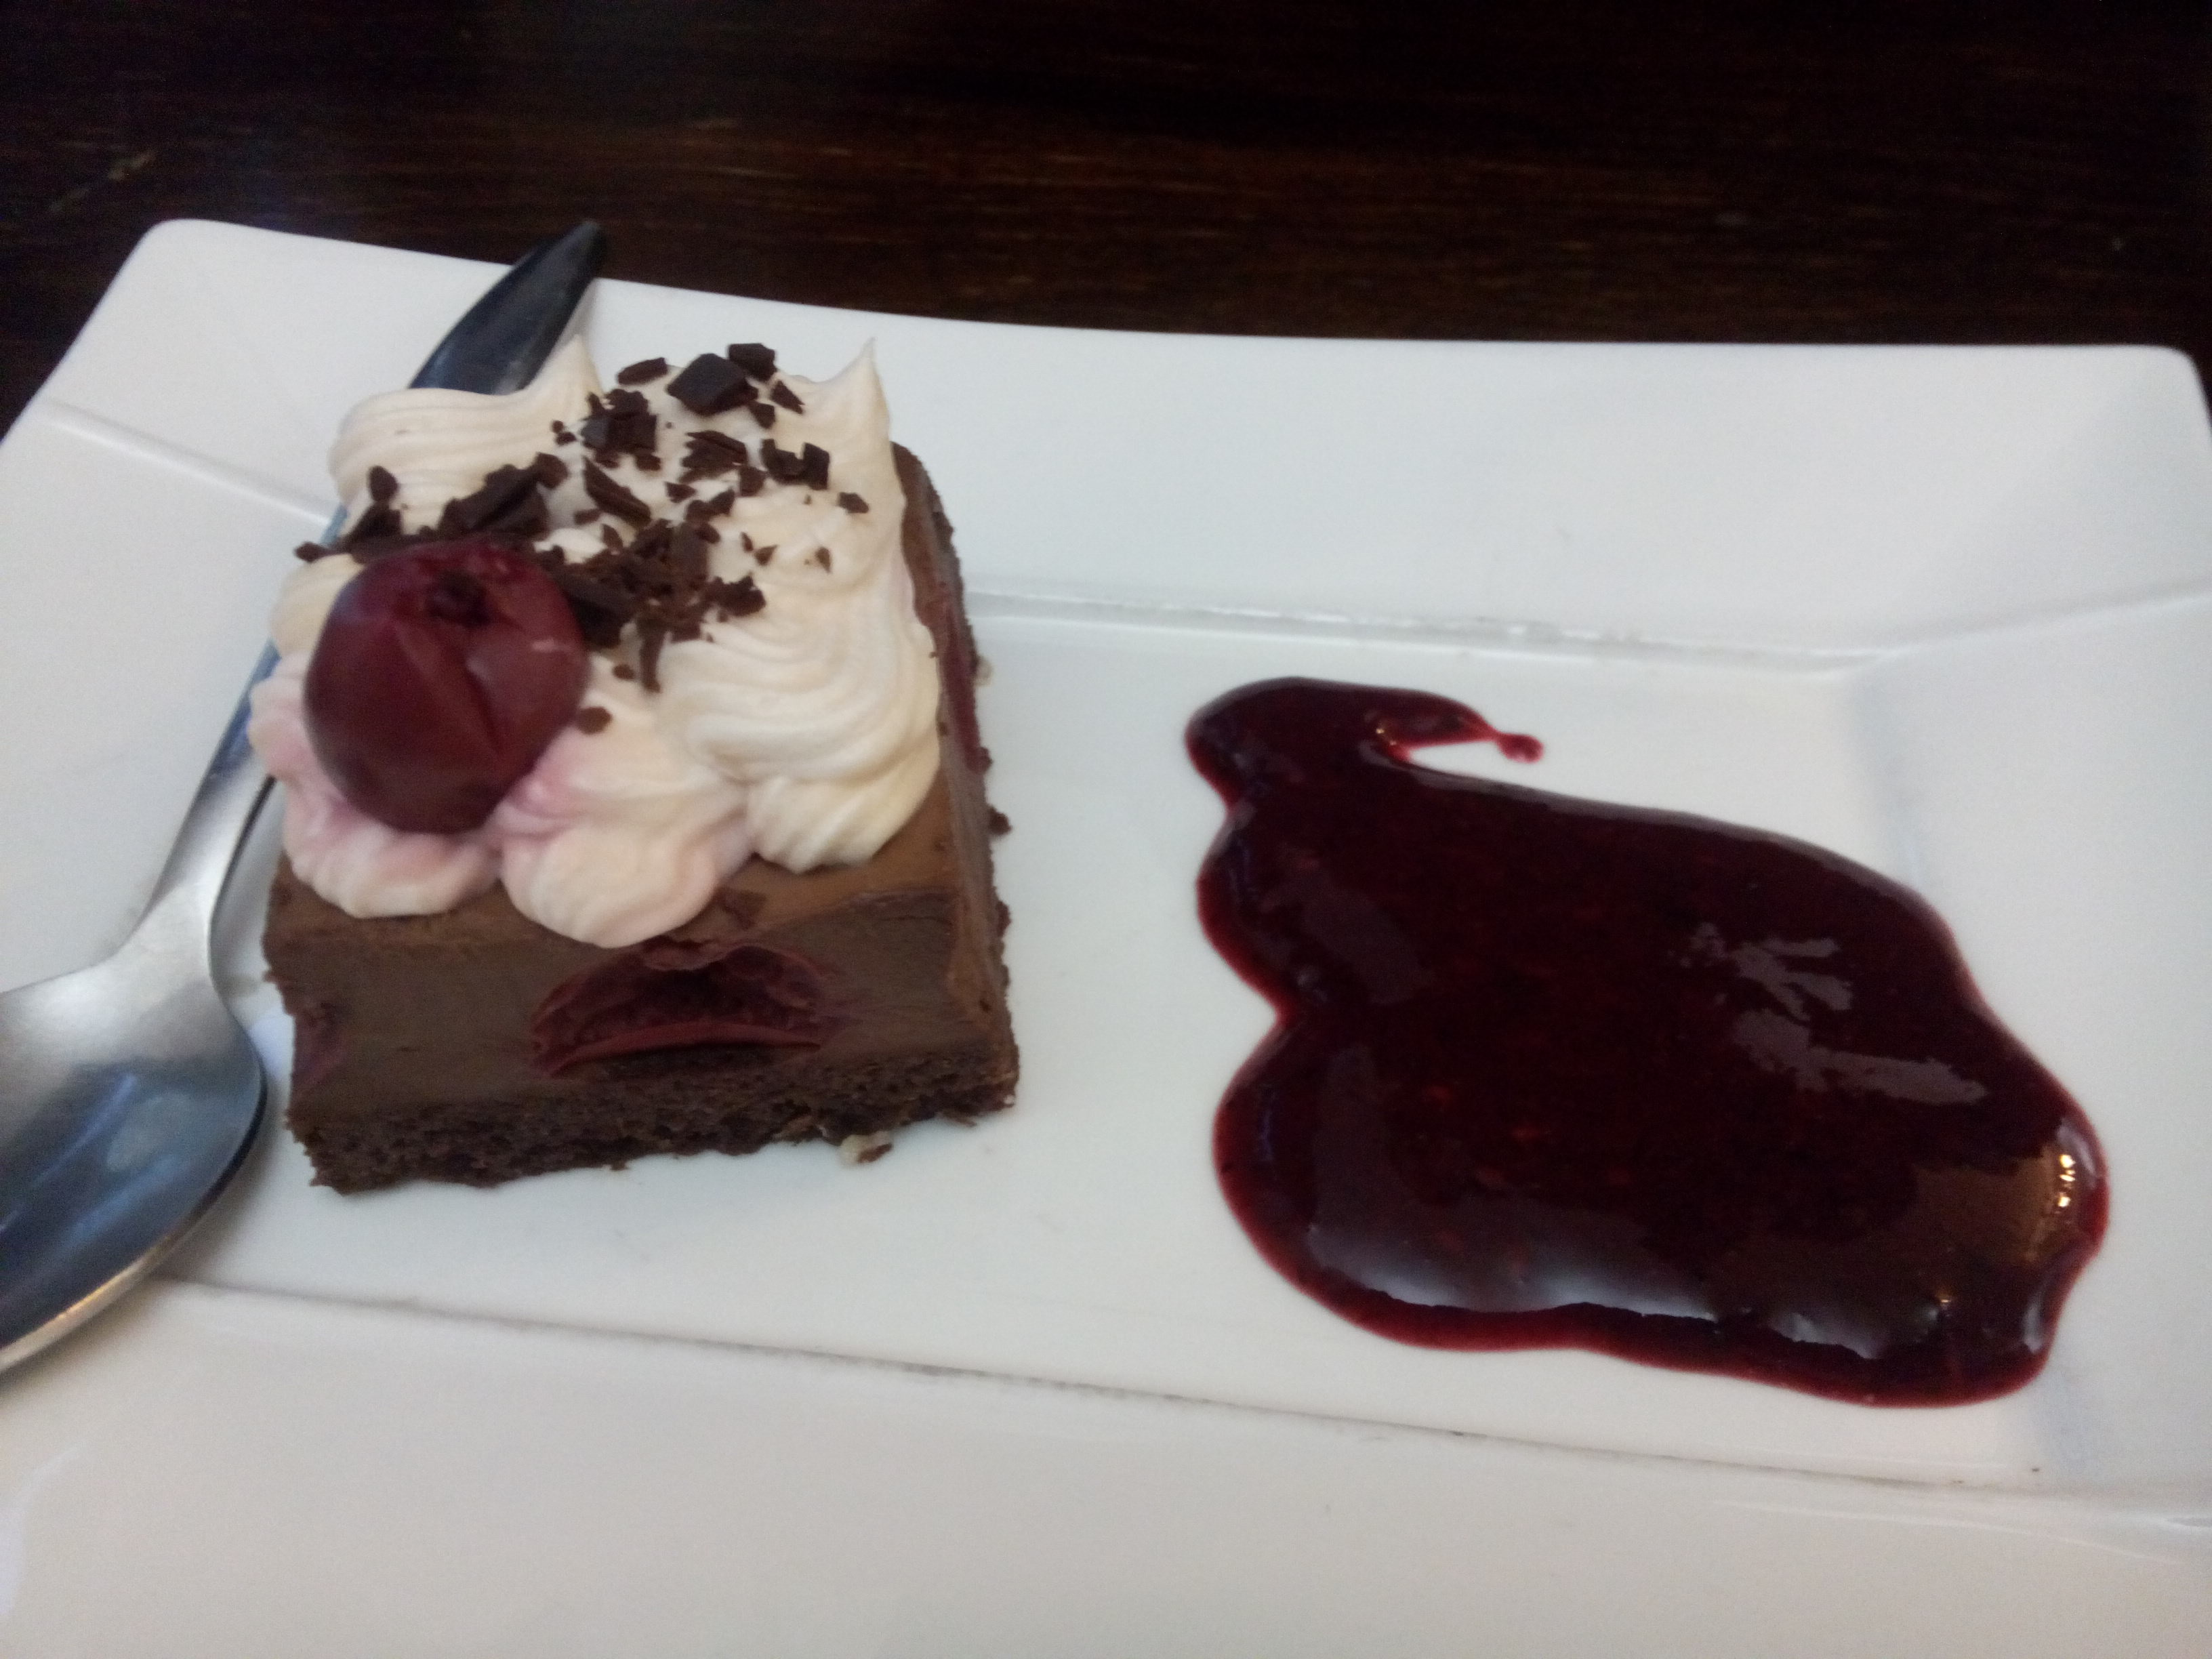 A chocolate square cake with cream and a raspberry on top, next to a blob of fruity sauce